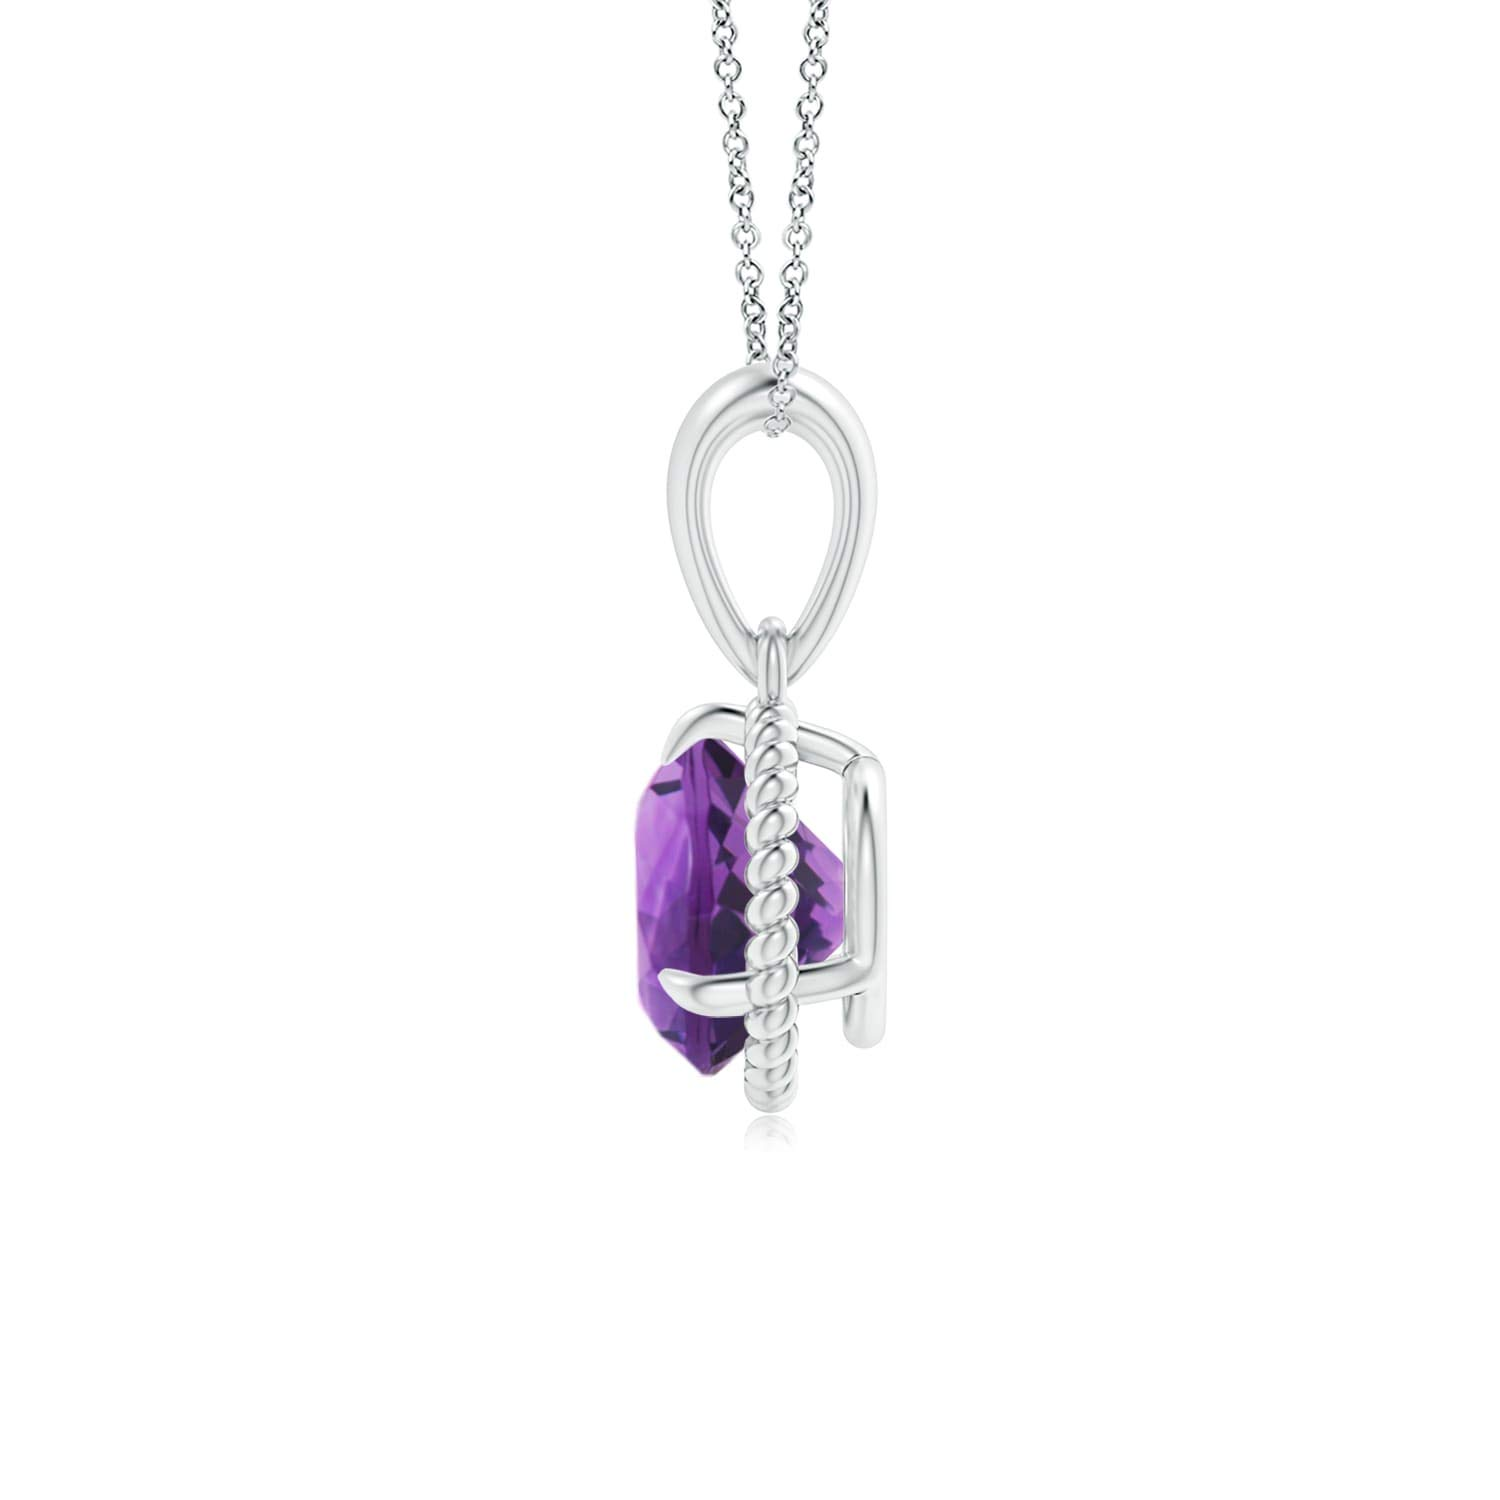 7mm Amethyst Rope-Framed Claw-Set Amethyst Solitaire Pendant